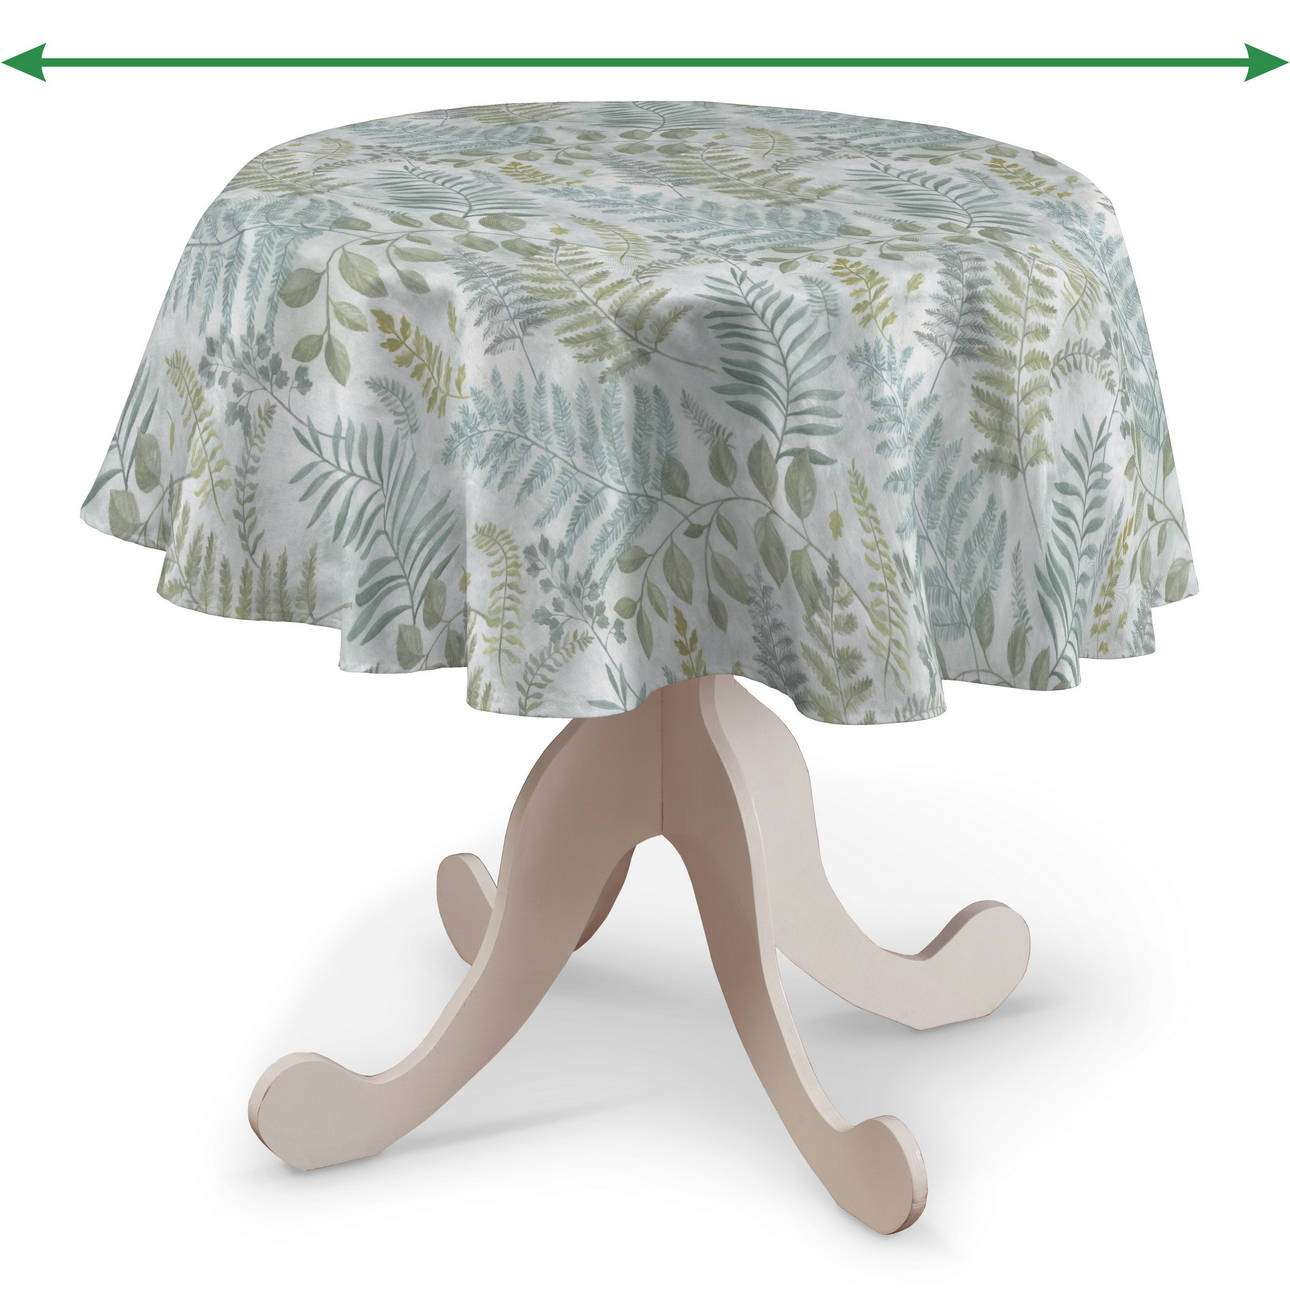 Round tablecloth in collection Pastel Forest, fabric: 142-46